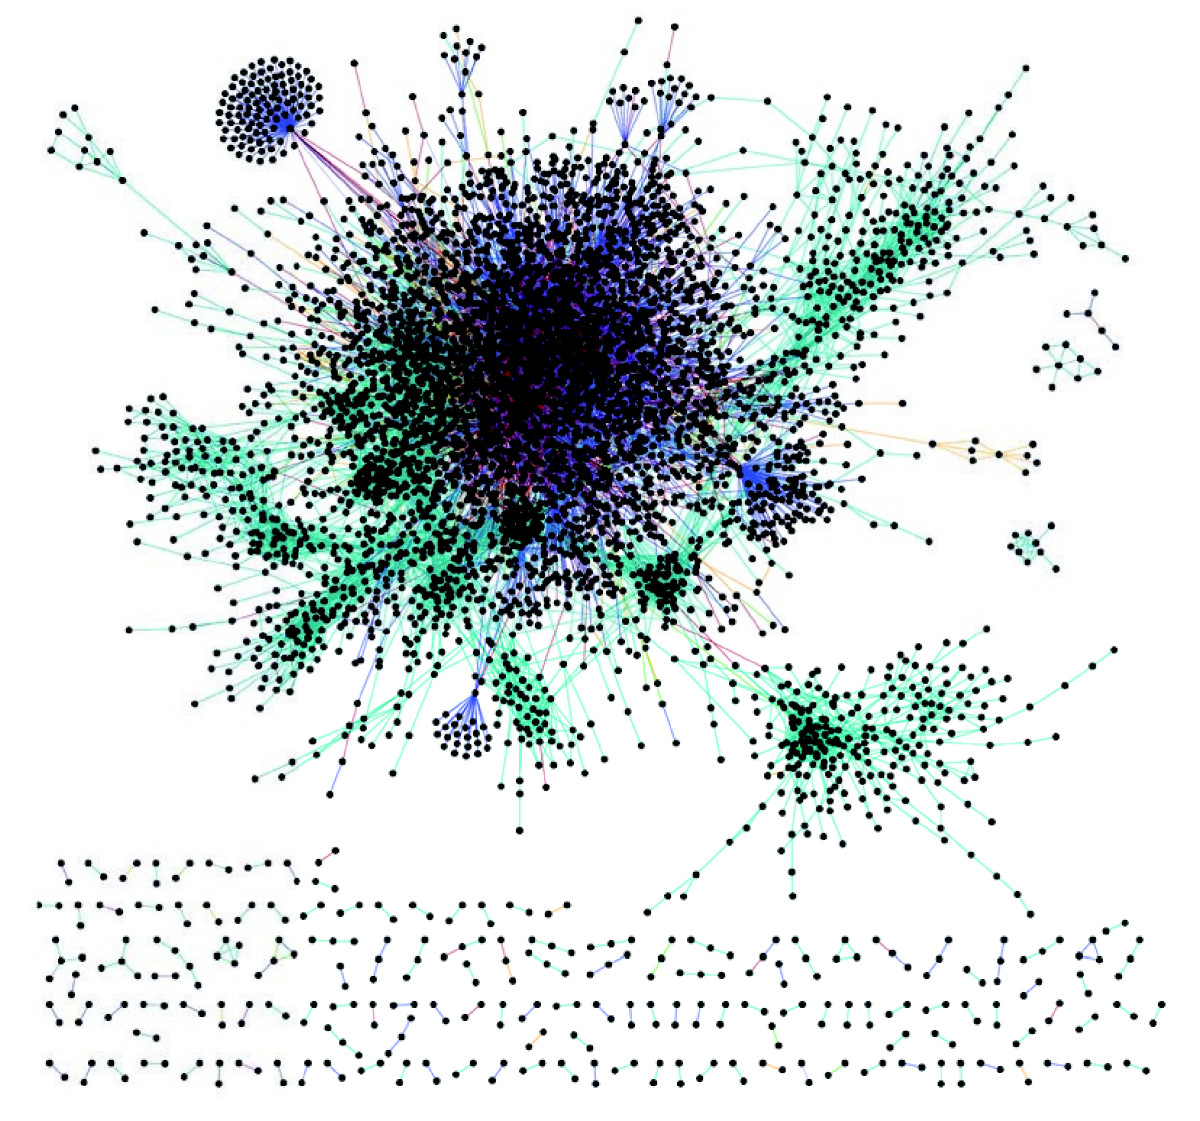 https://static-content.springer.com/image/art%3A10.1186%2Fgb-2009-10-9-r97/MediaObjects/13059_2009_Article_2247_Fig6_HTML.jpg